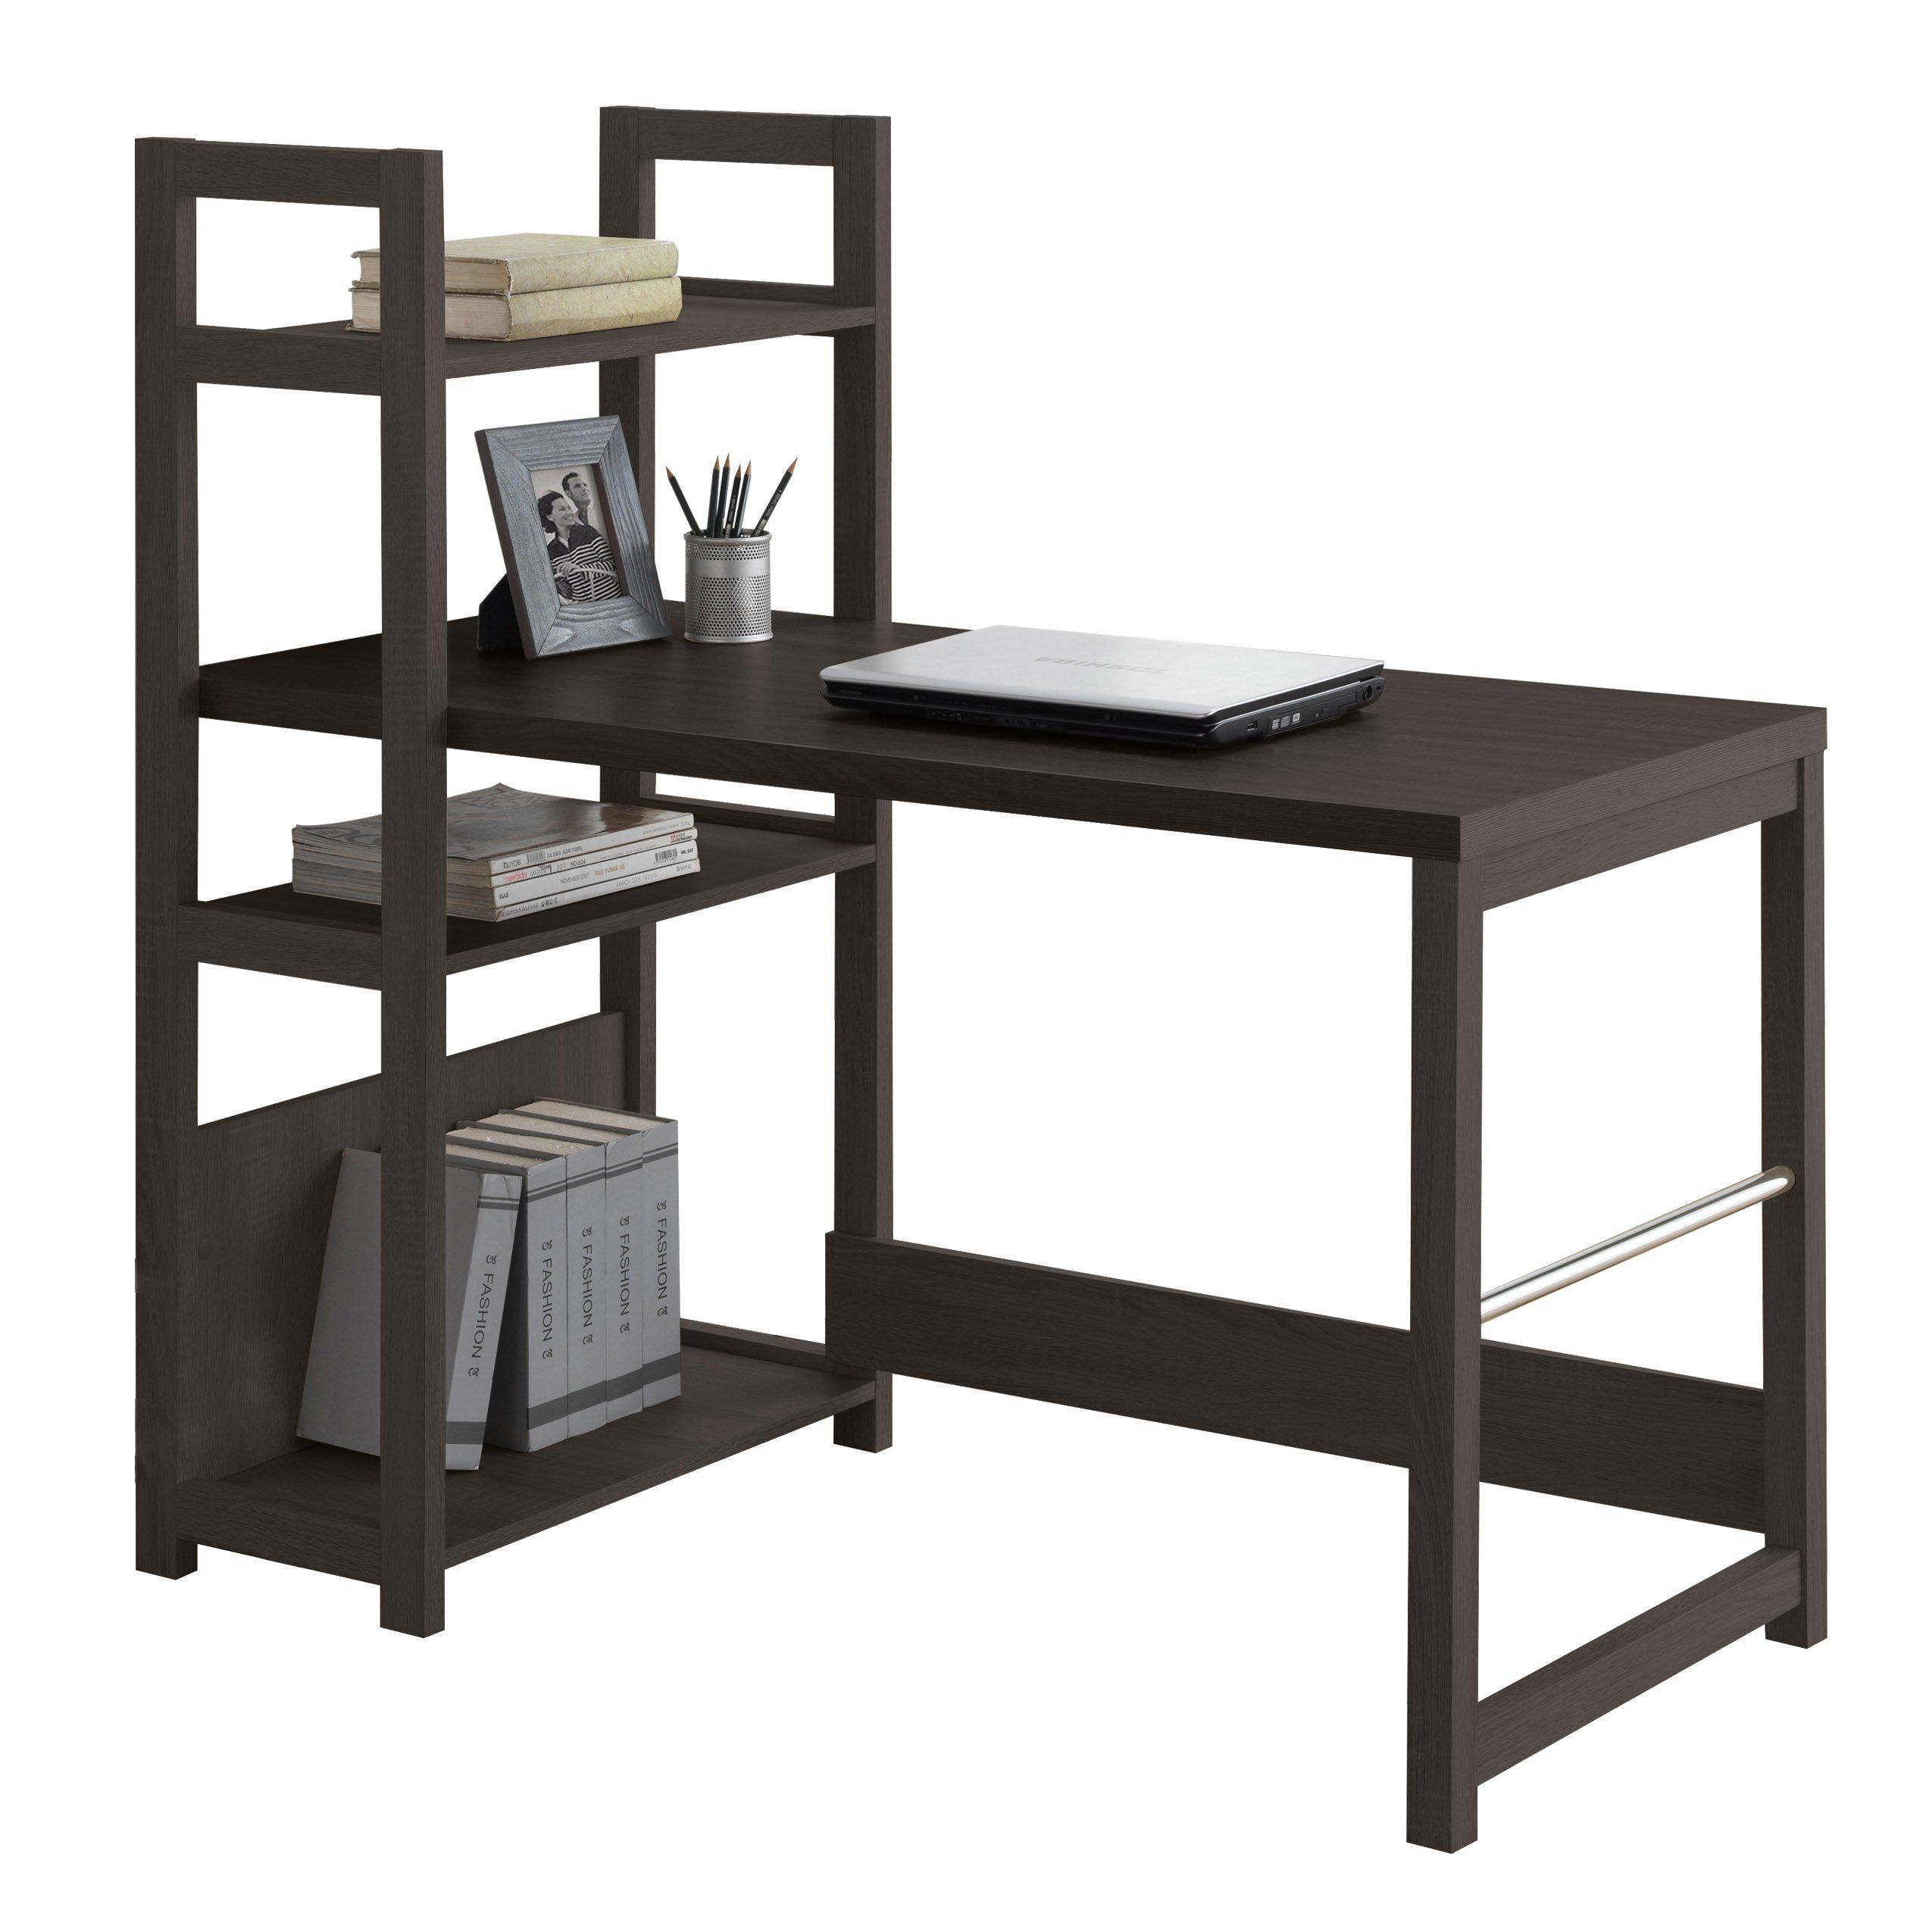 Corliving wfpd folio bookshelf styled desk rich espresso